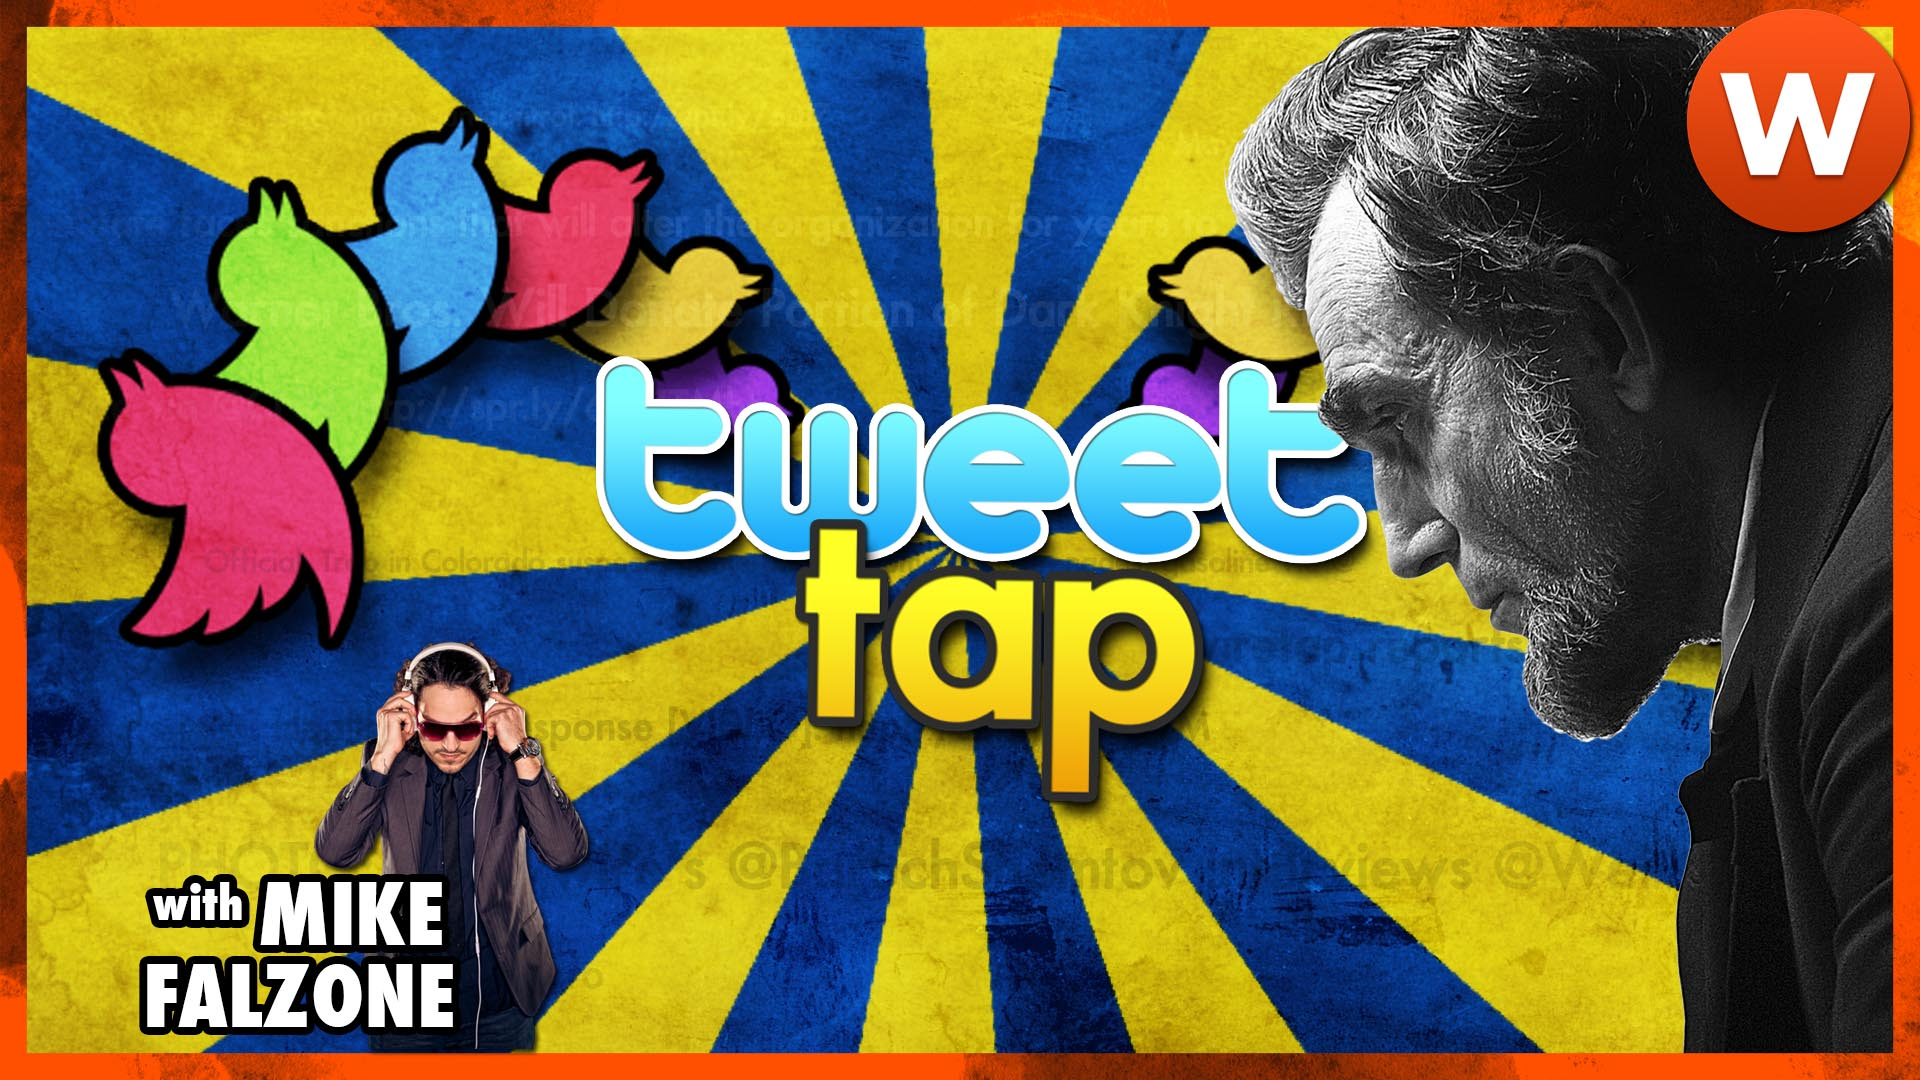 Lincoln Defeated on December 13th #TweetTap